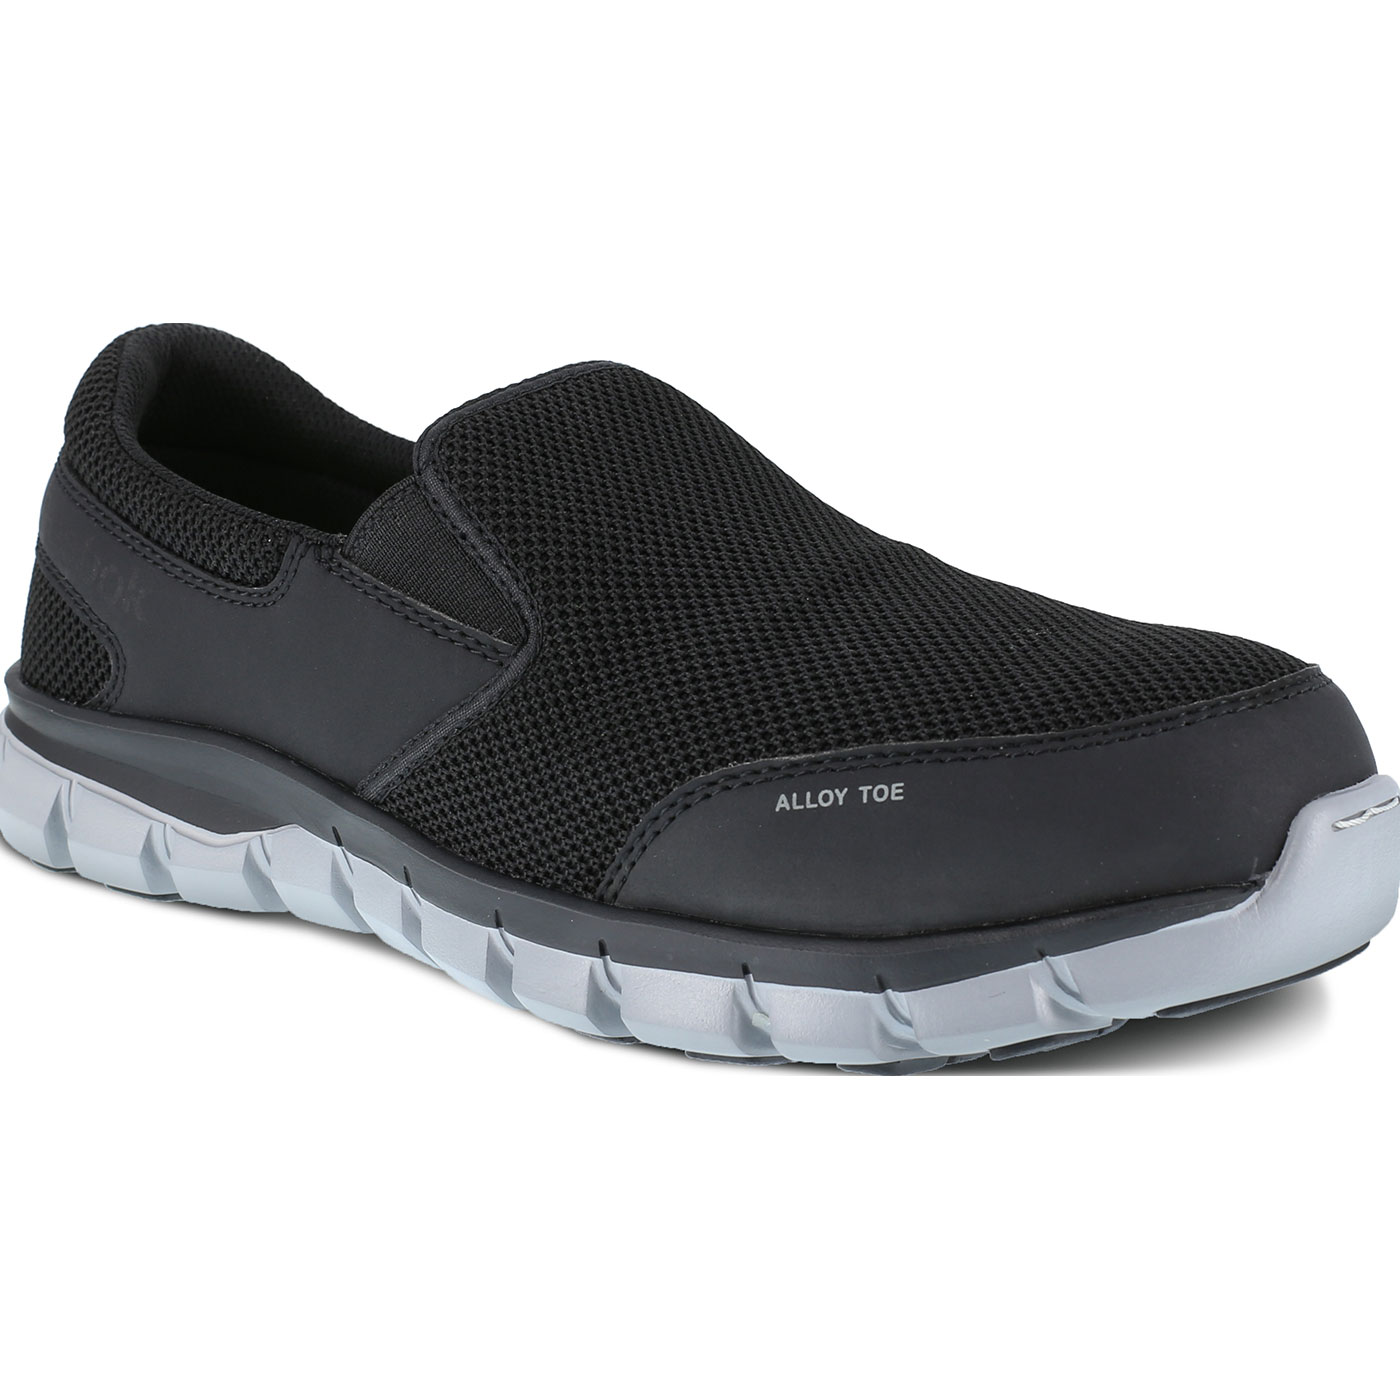 041910687a2 Reebok Sublite Cushion Work Men s Alloy Toe Electrical Hazard Work Athletic  Oxford Slip-on Shoe